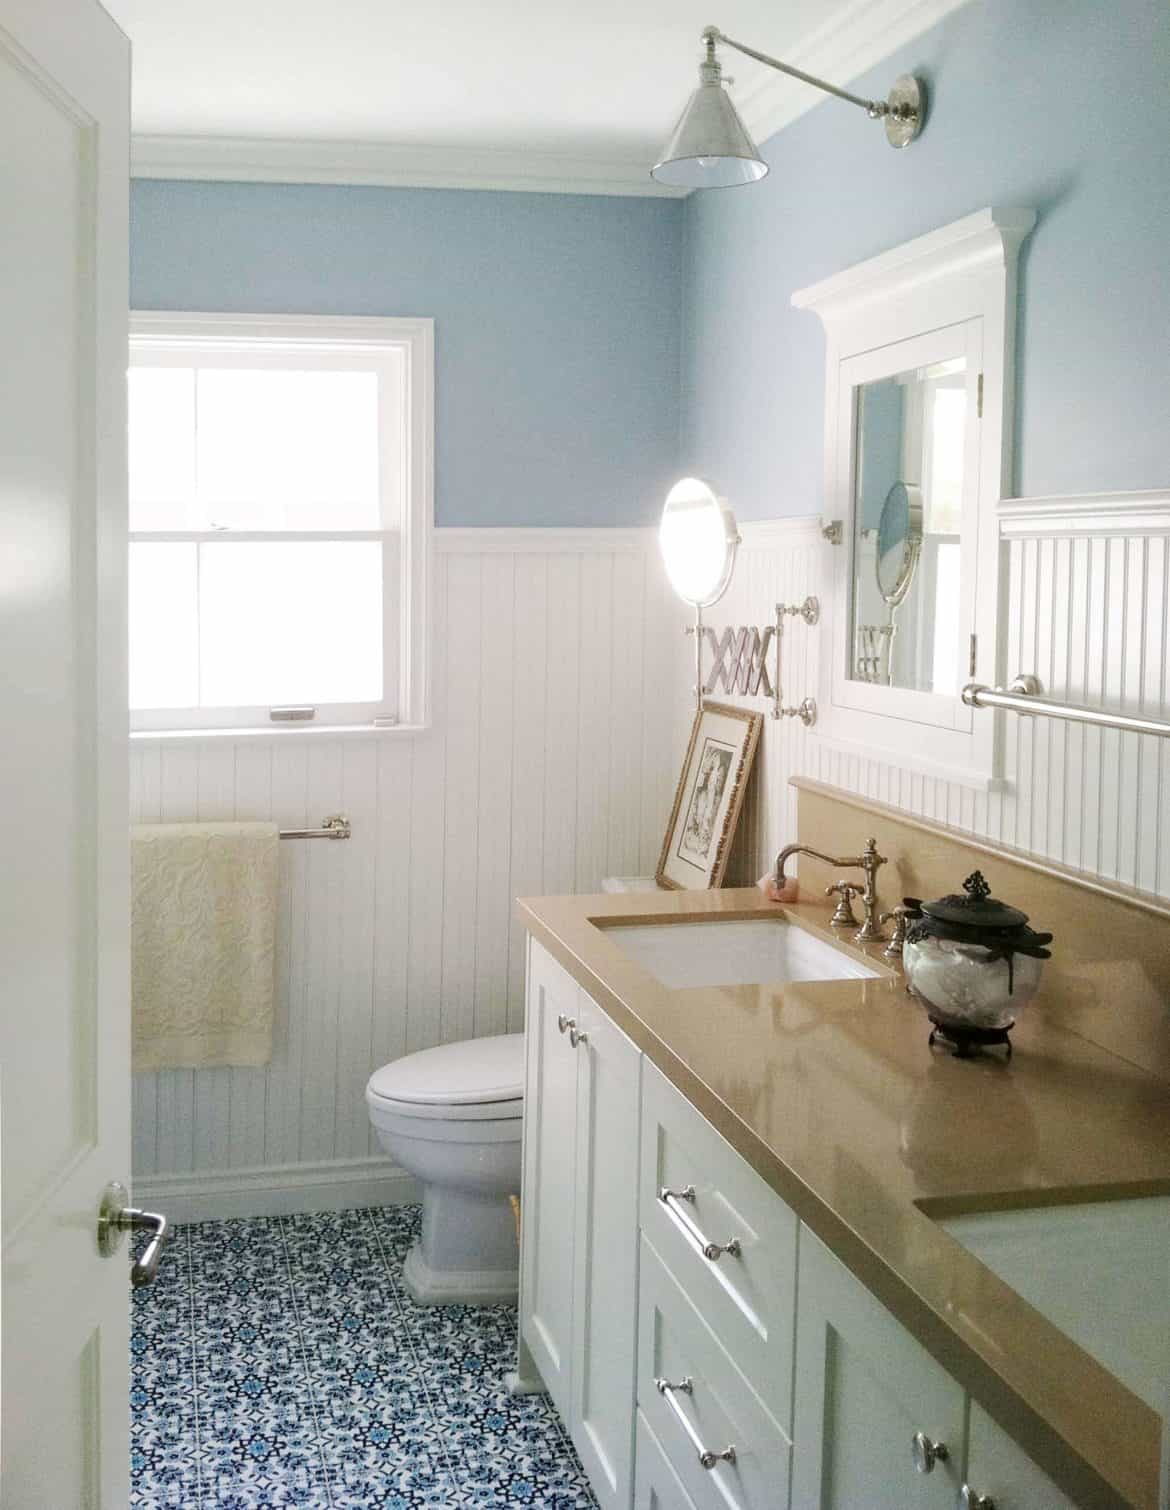 Can You Paint Bathroom Countertops? [ANSWERED WITH TIPS]